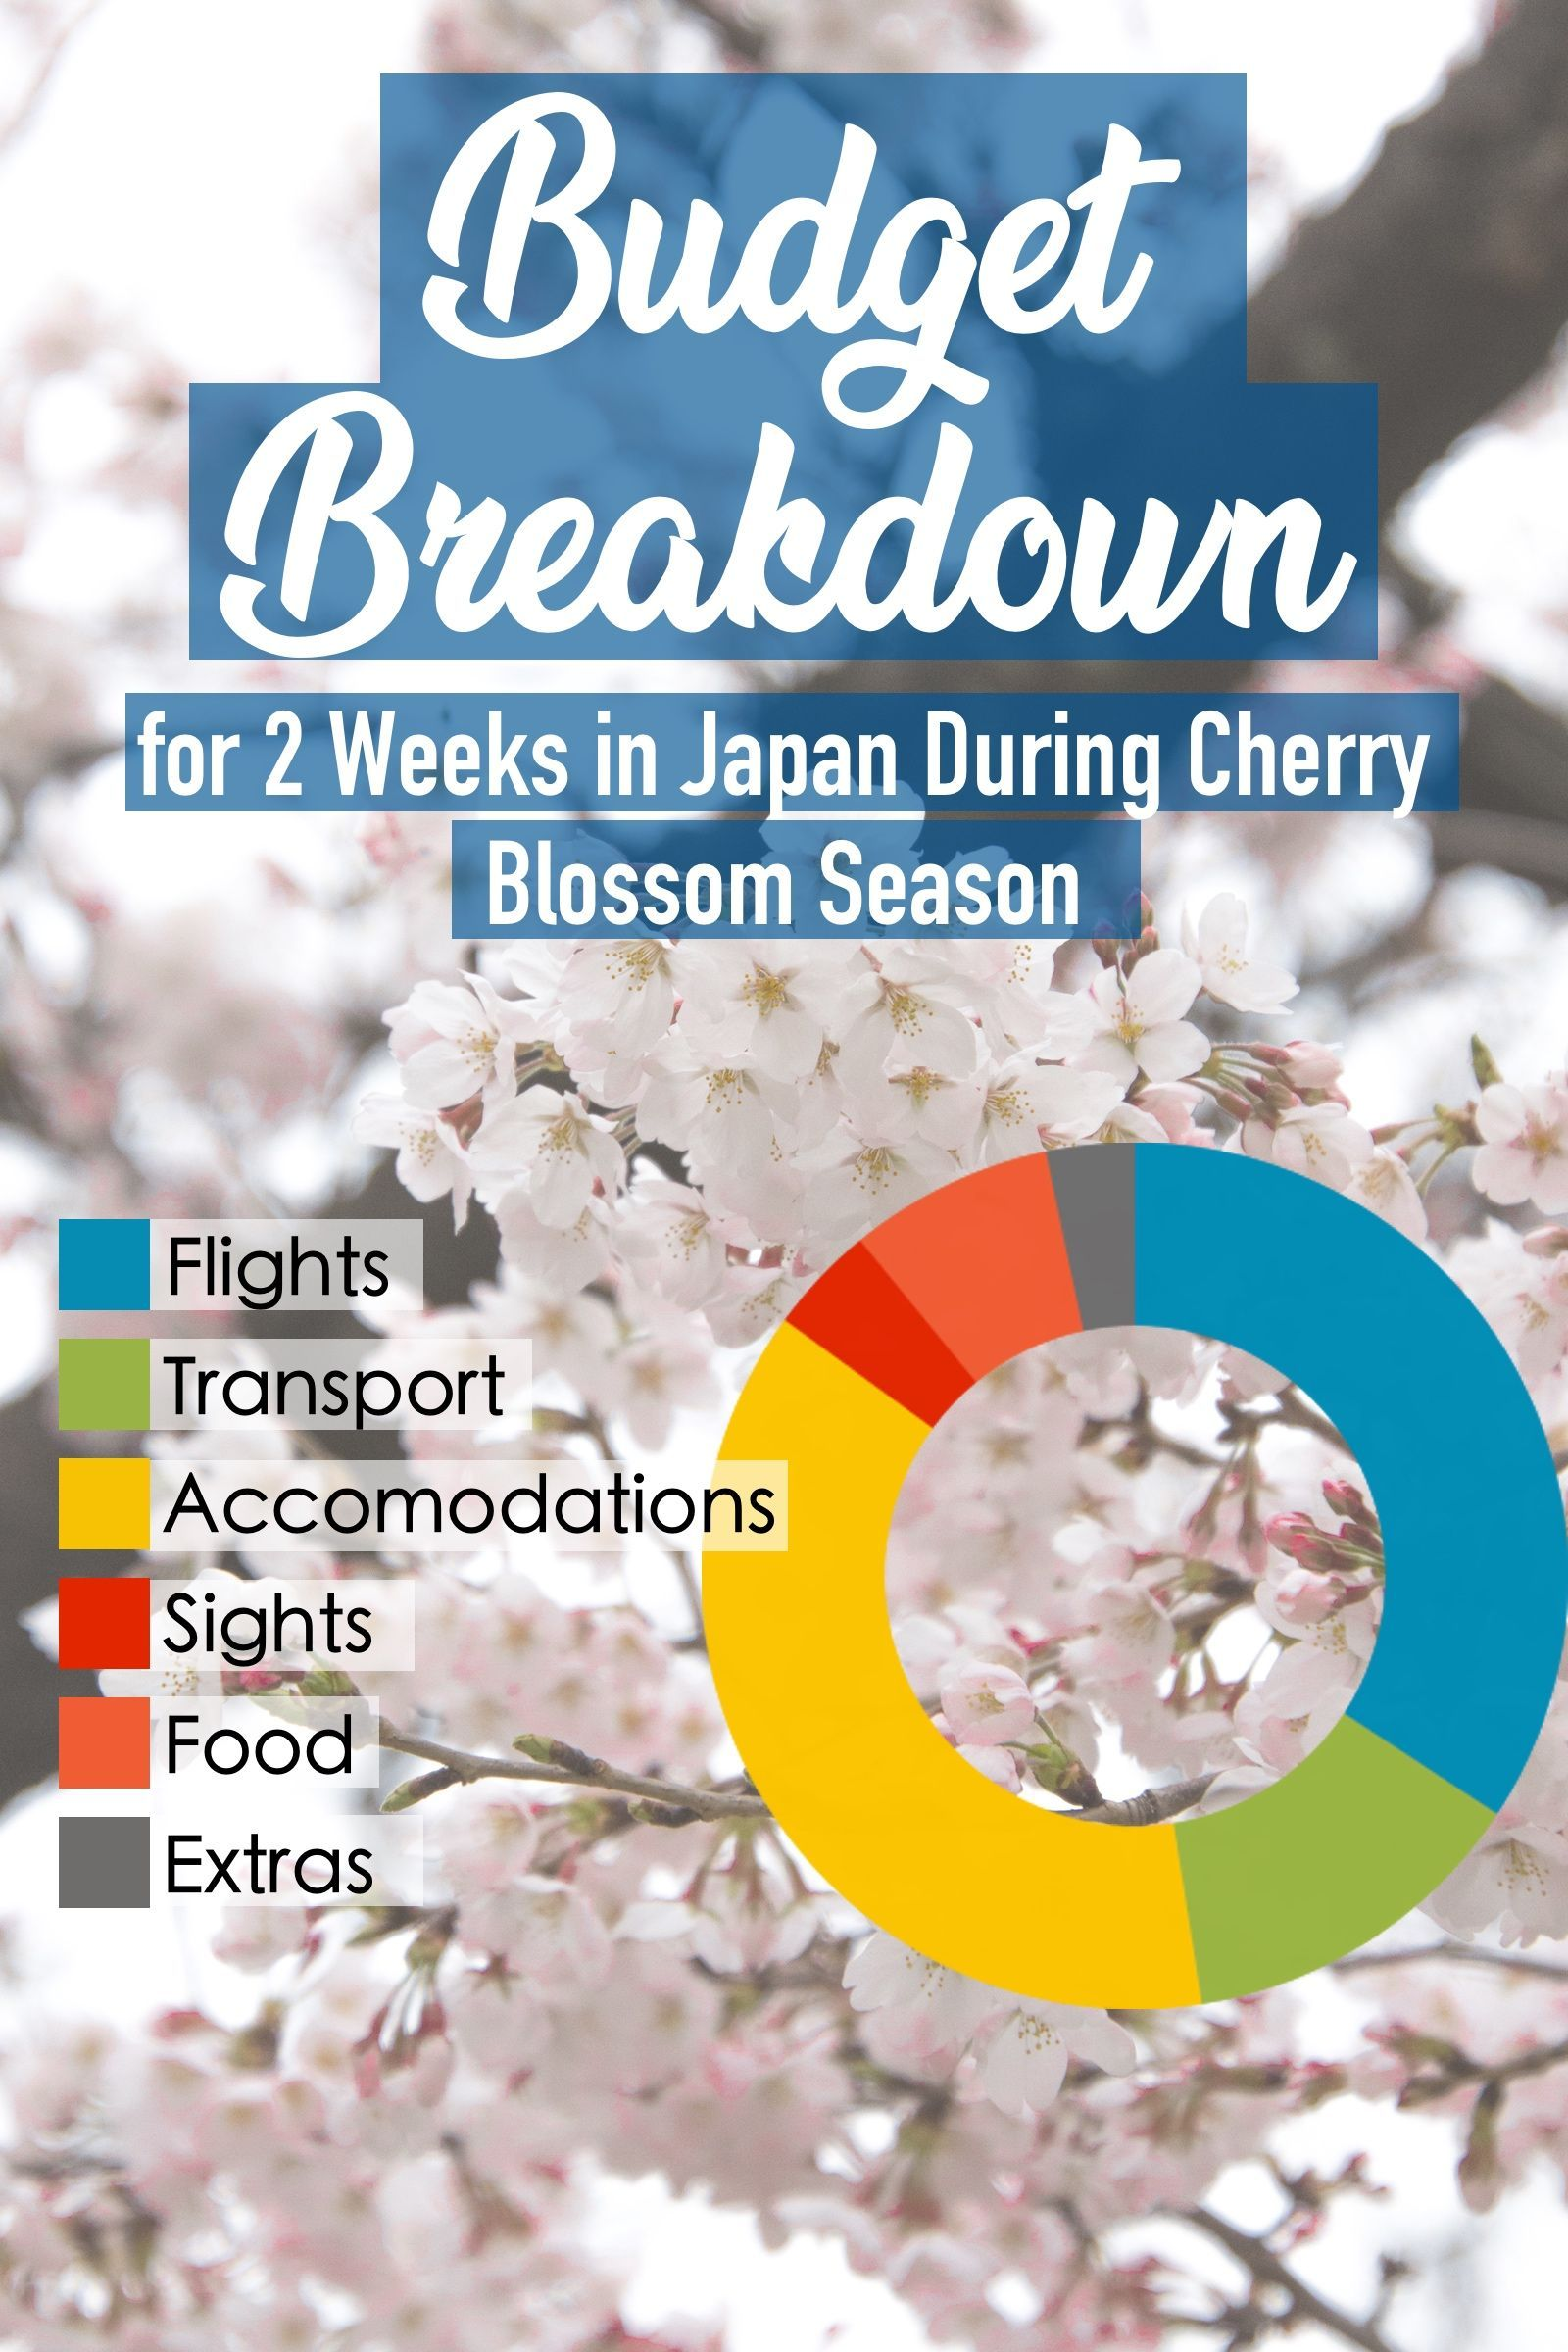 How Much Does It Cost To Travel To Japan Here Is A Detailed Account Of Everything We Spent On Our 2 Week Trip Around Japan Travel Cherry Blossom Season Japan